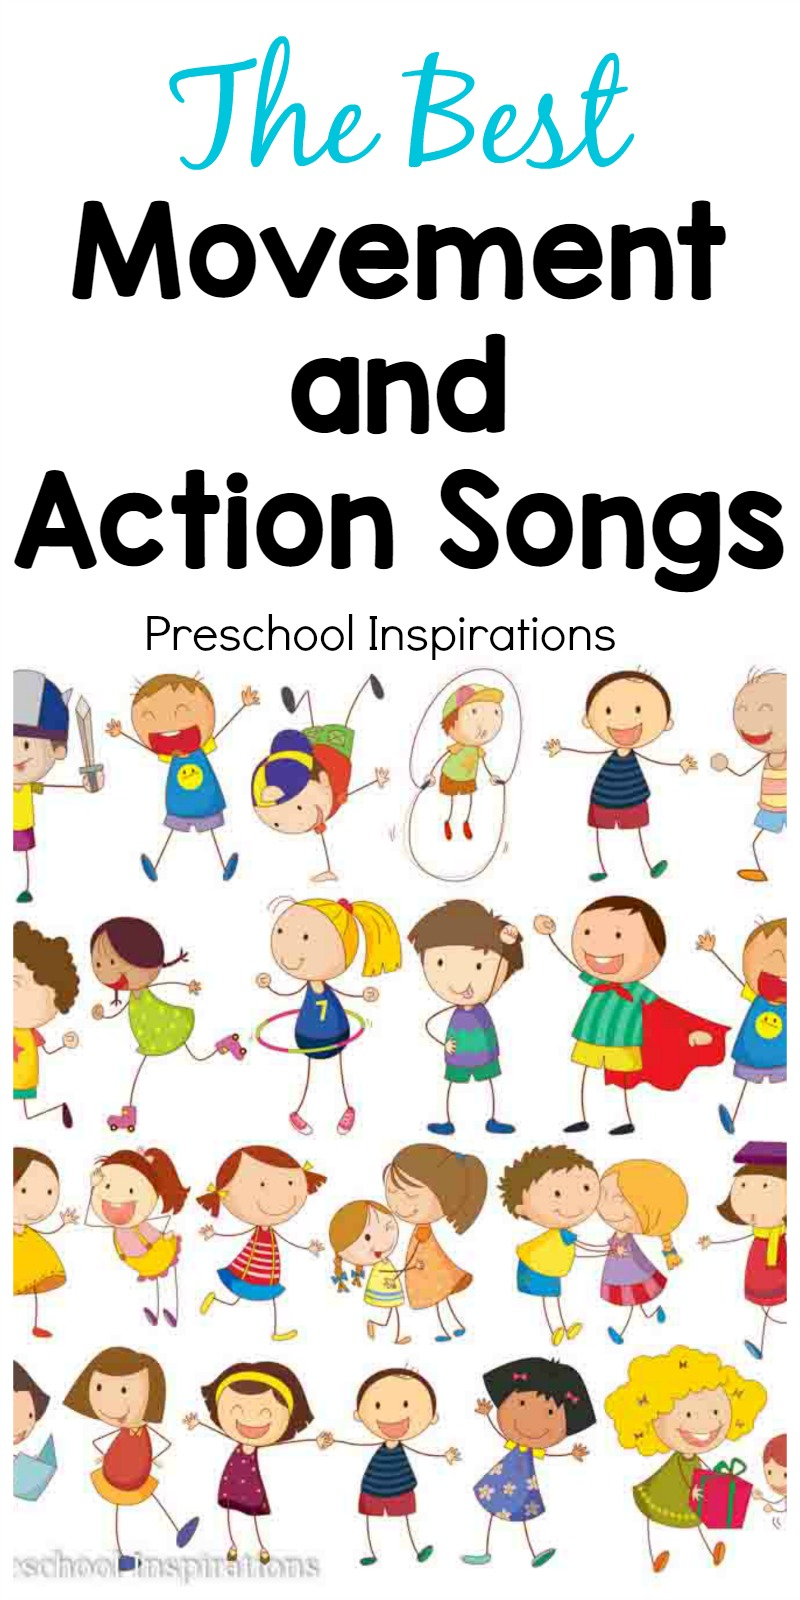 The Best Movement And Action Songs For Children Preschool Inspirations